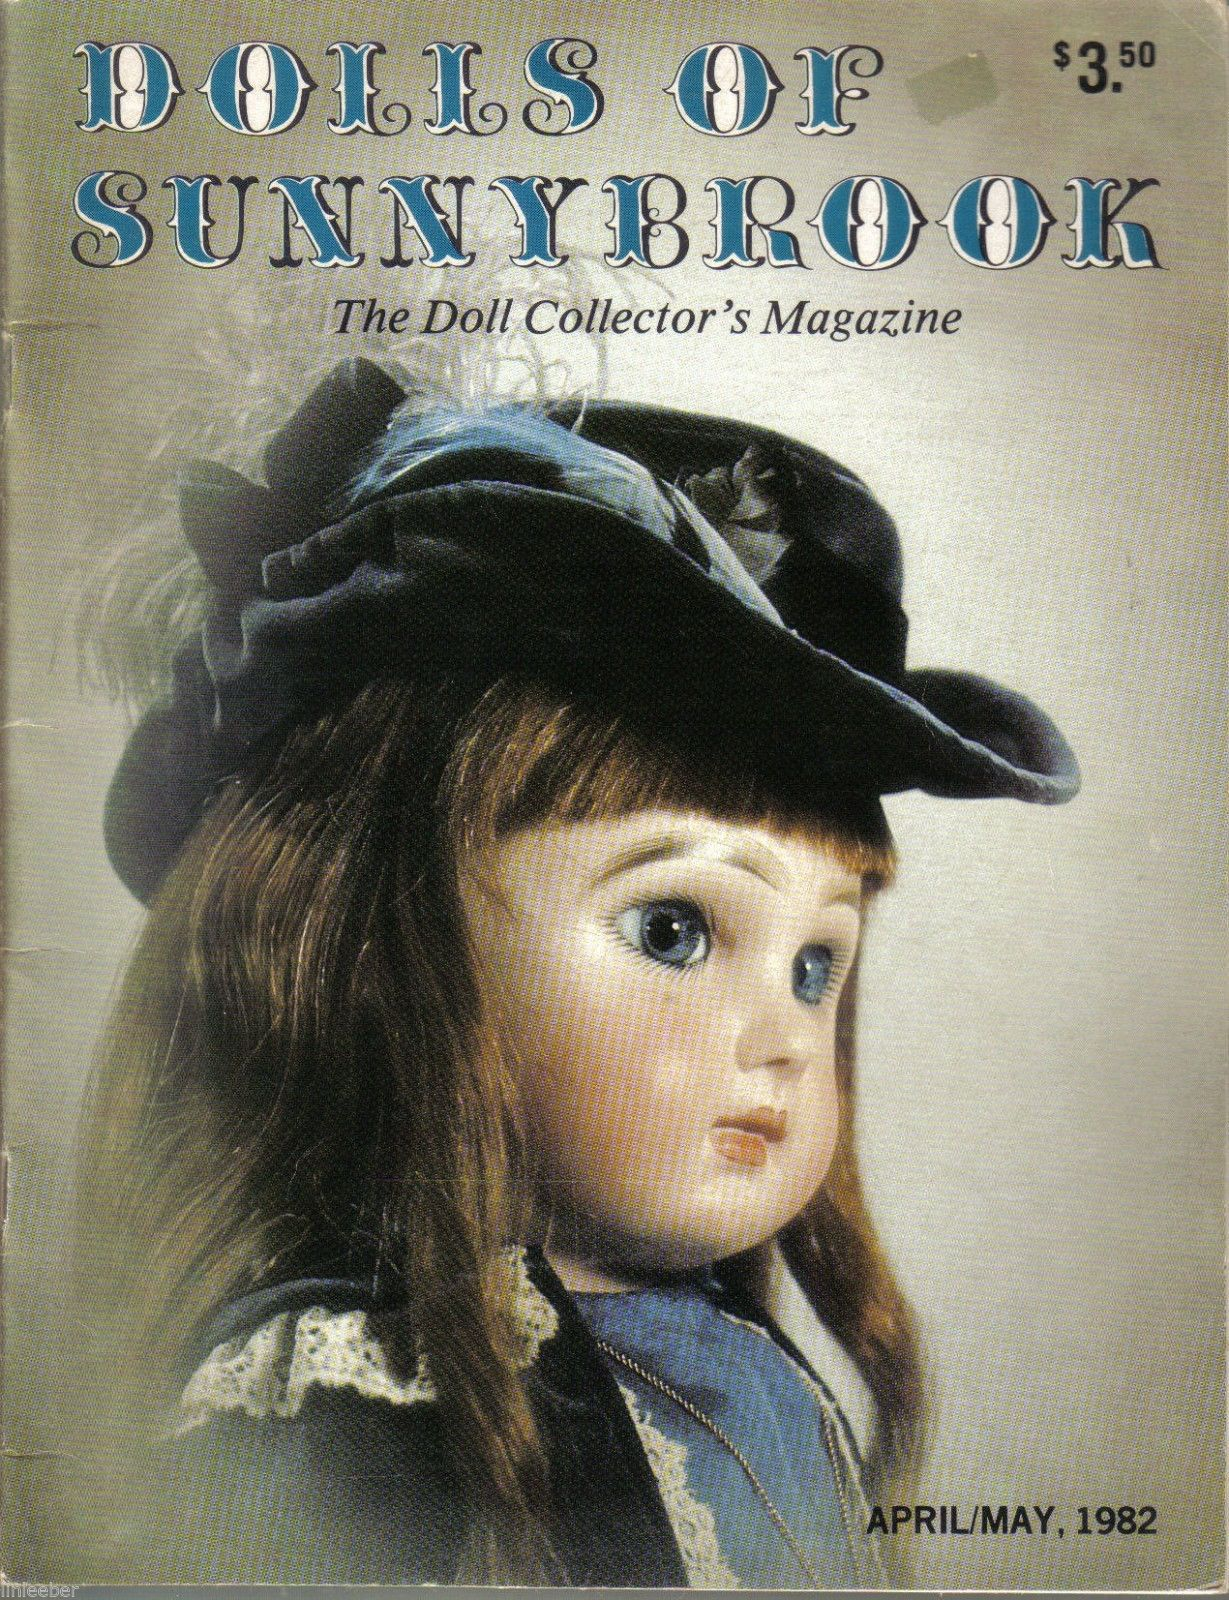 Primary image for Dolls Of Sunnybrook-The Doll Collector's Magazine;April/May 1982.Volume 2,Issue1